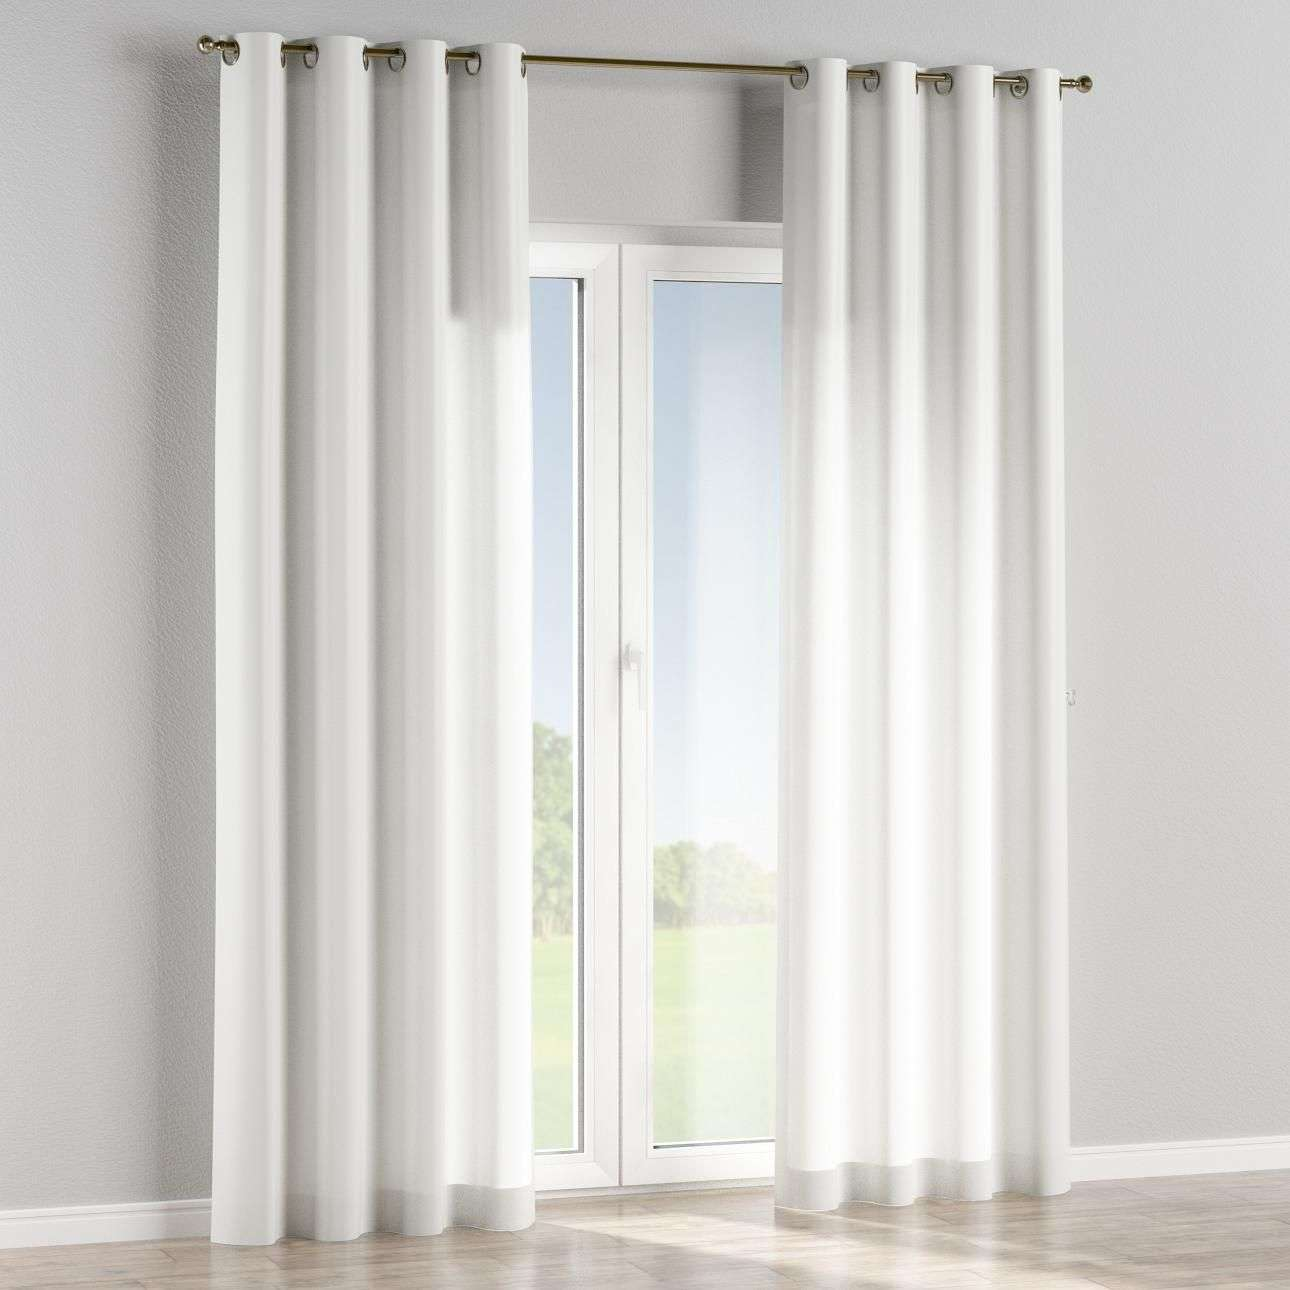 Eyelet curtains in collection Ashley, fabric: 137-73